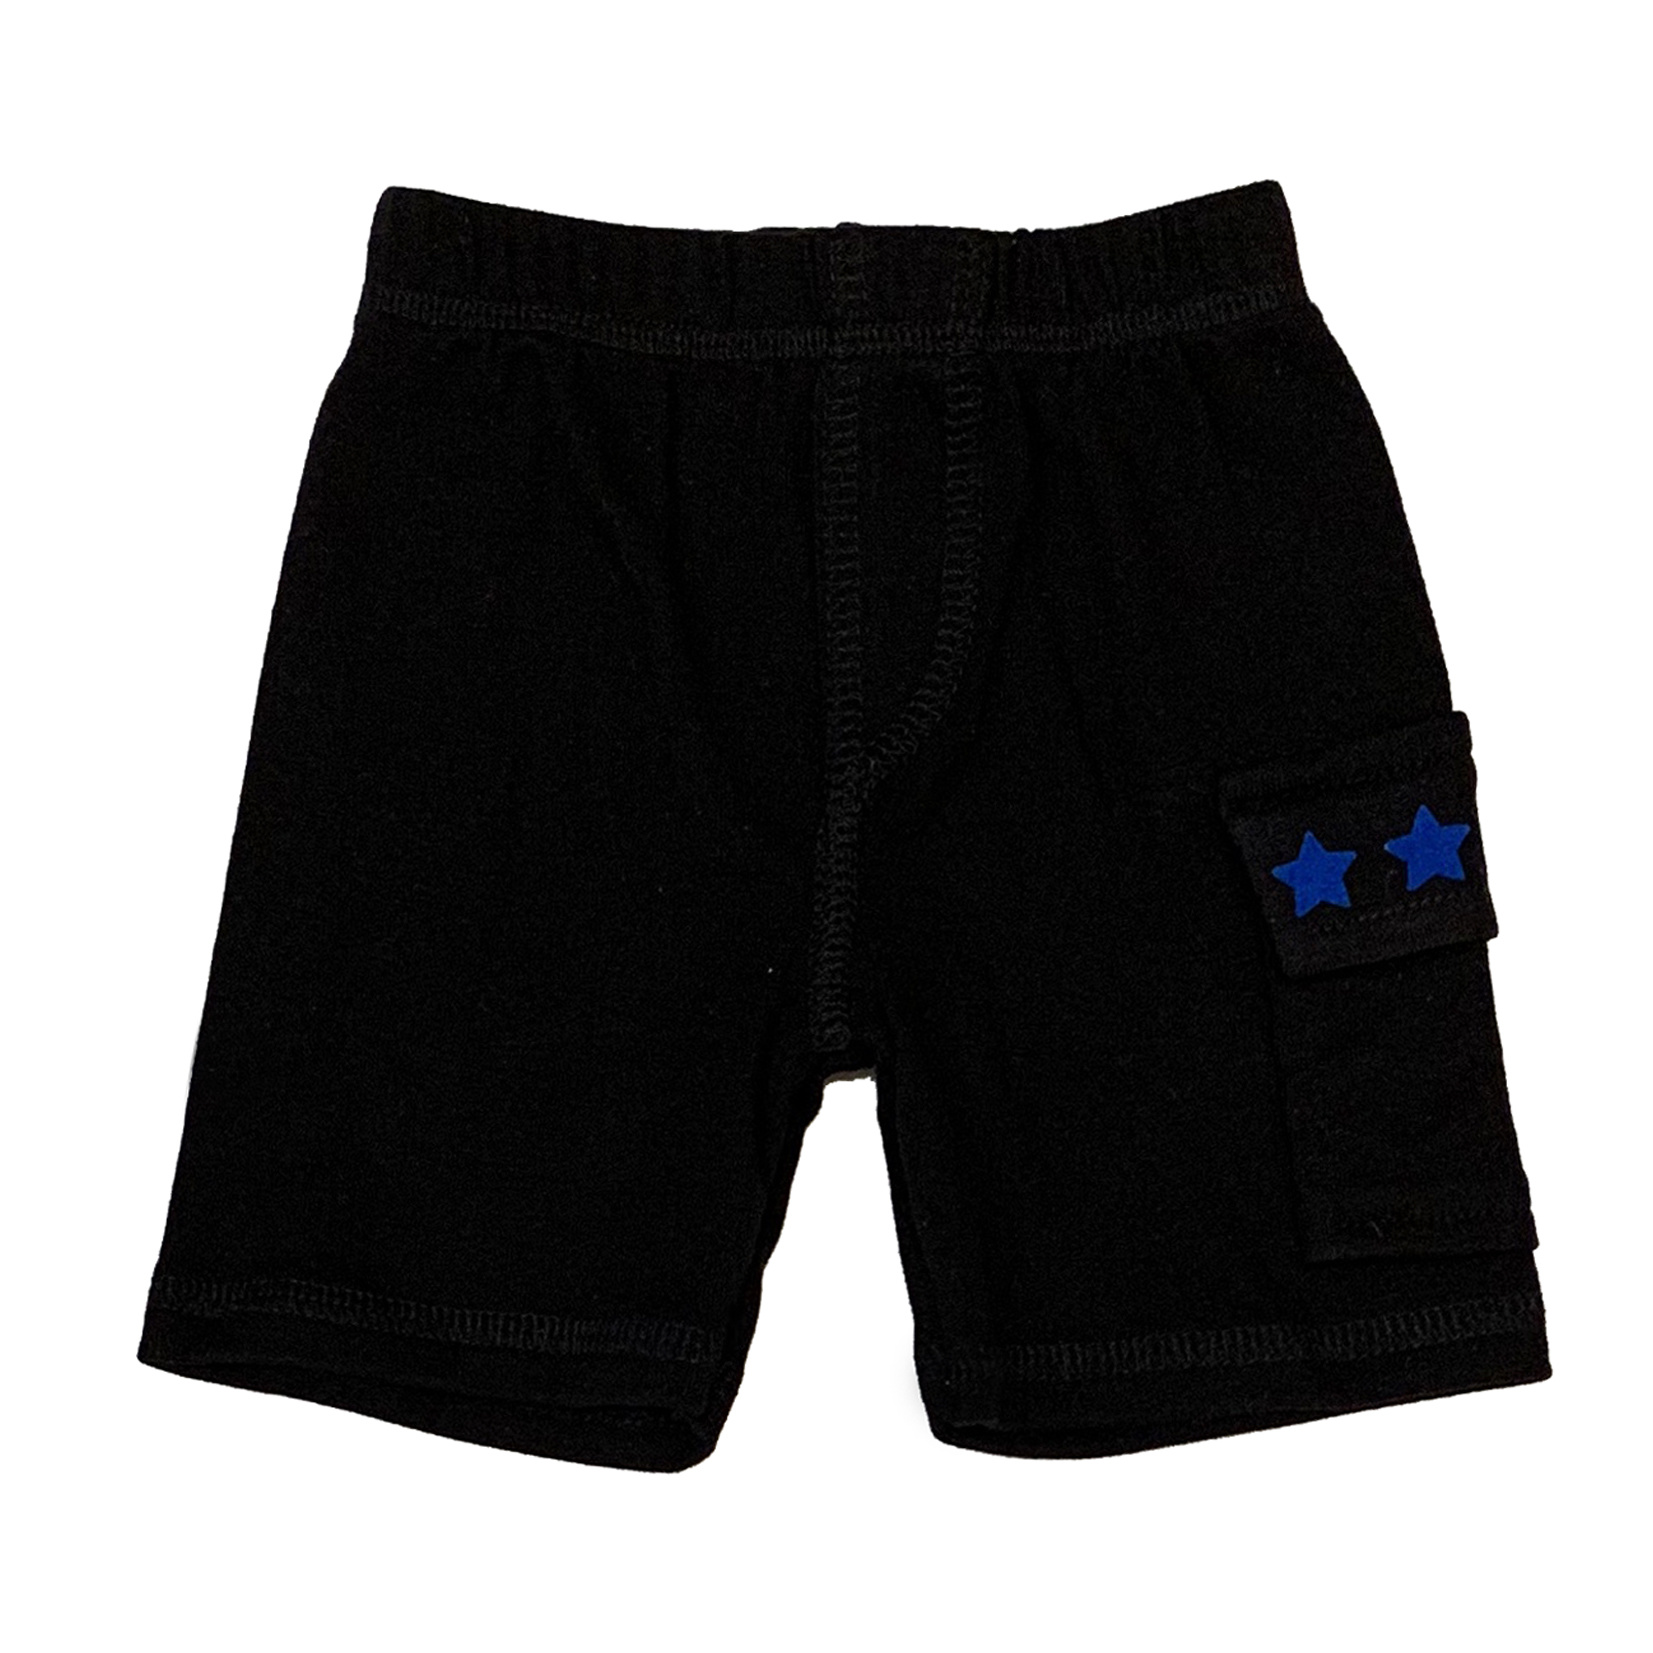 Small Change Blue Star Cargo Shorts